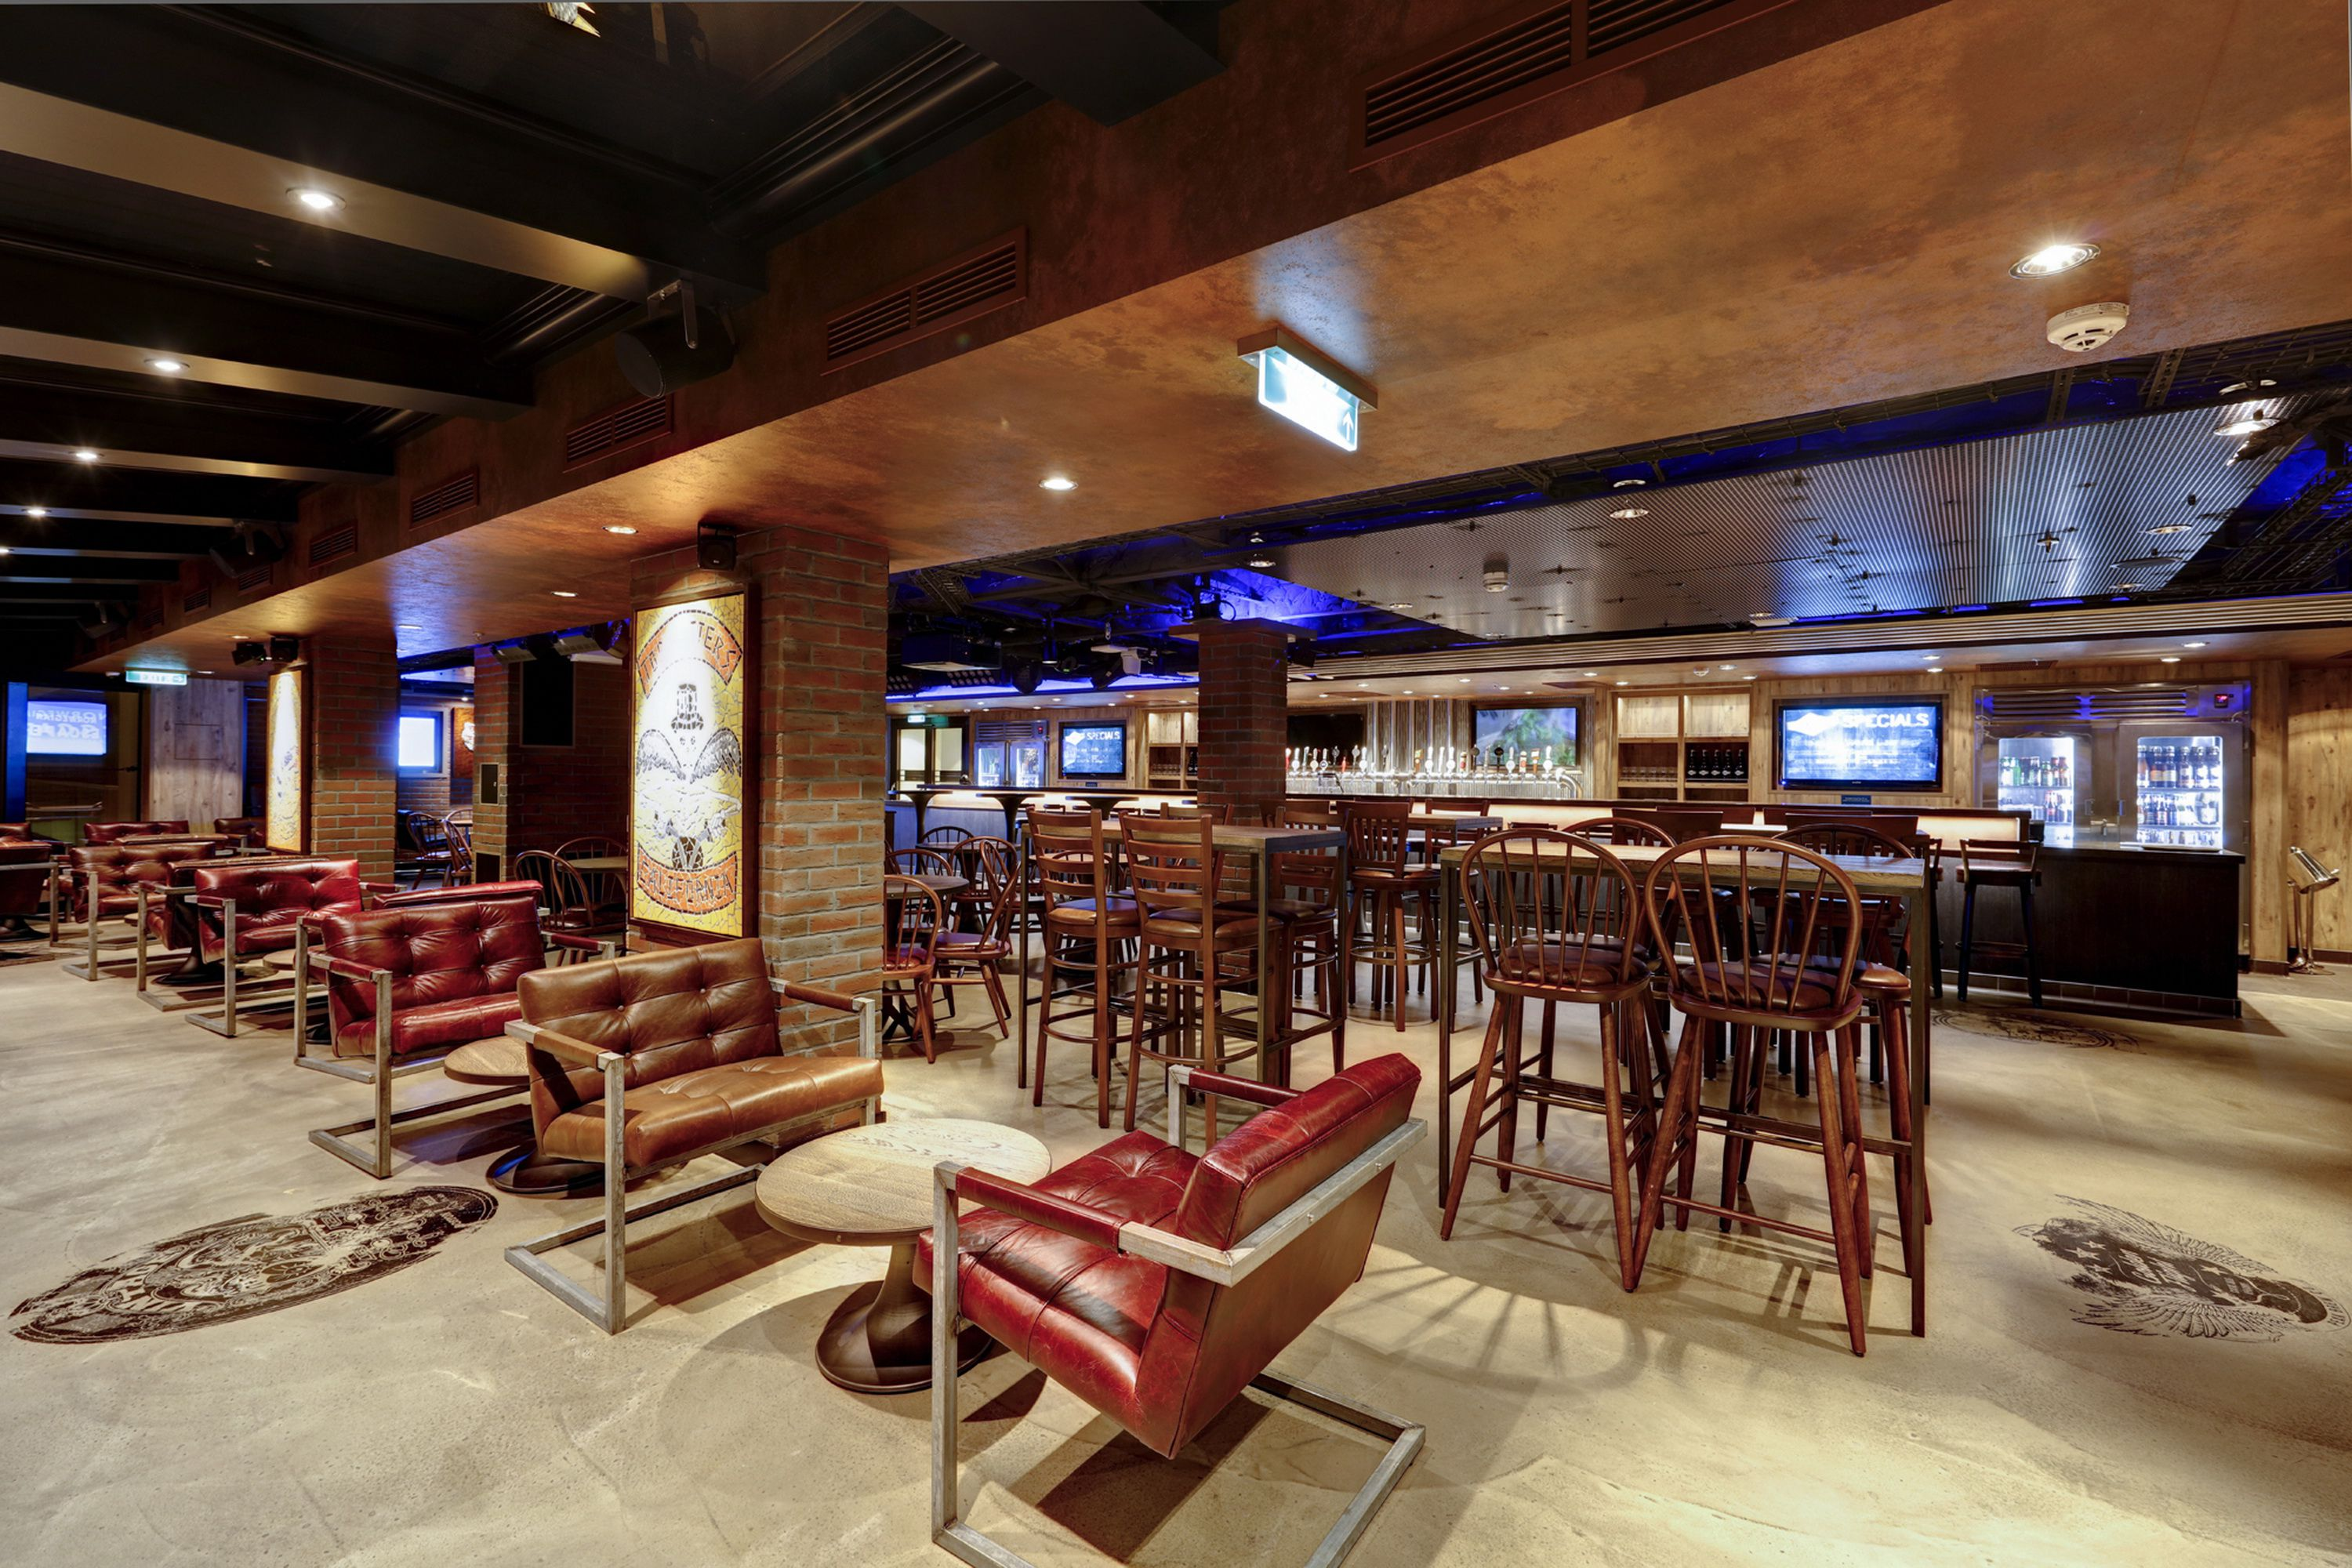 Norwegian Escape Cruise Ship Bars and Lounges